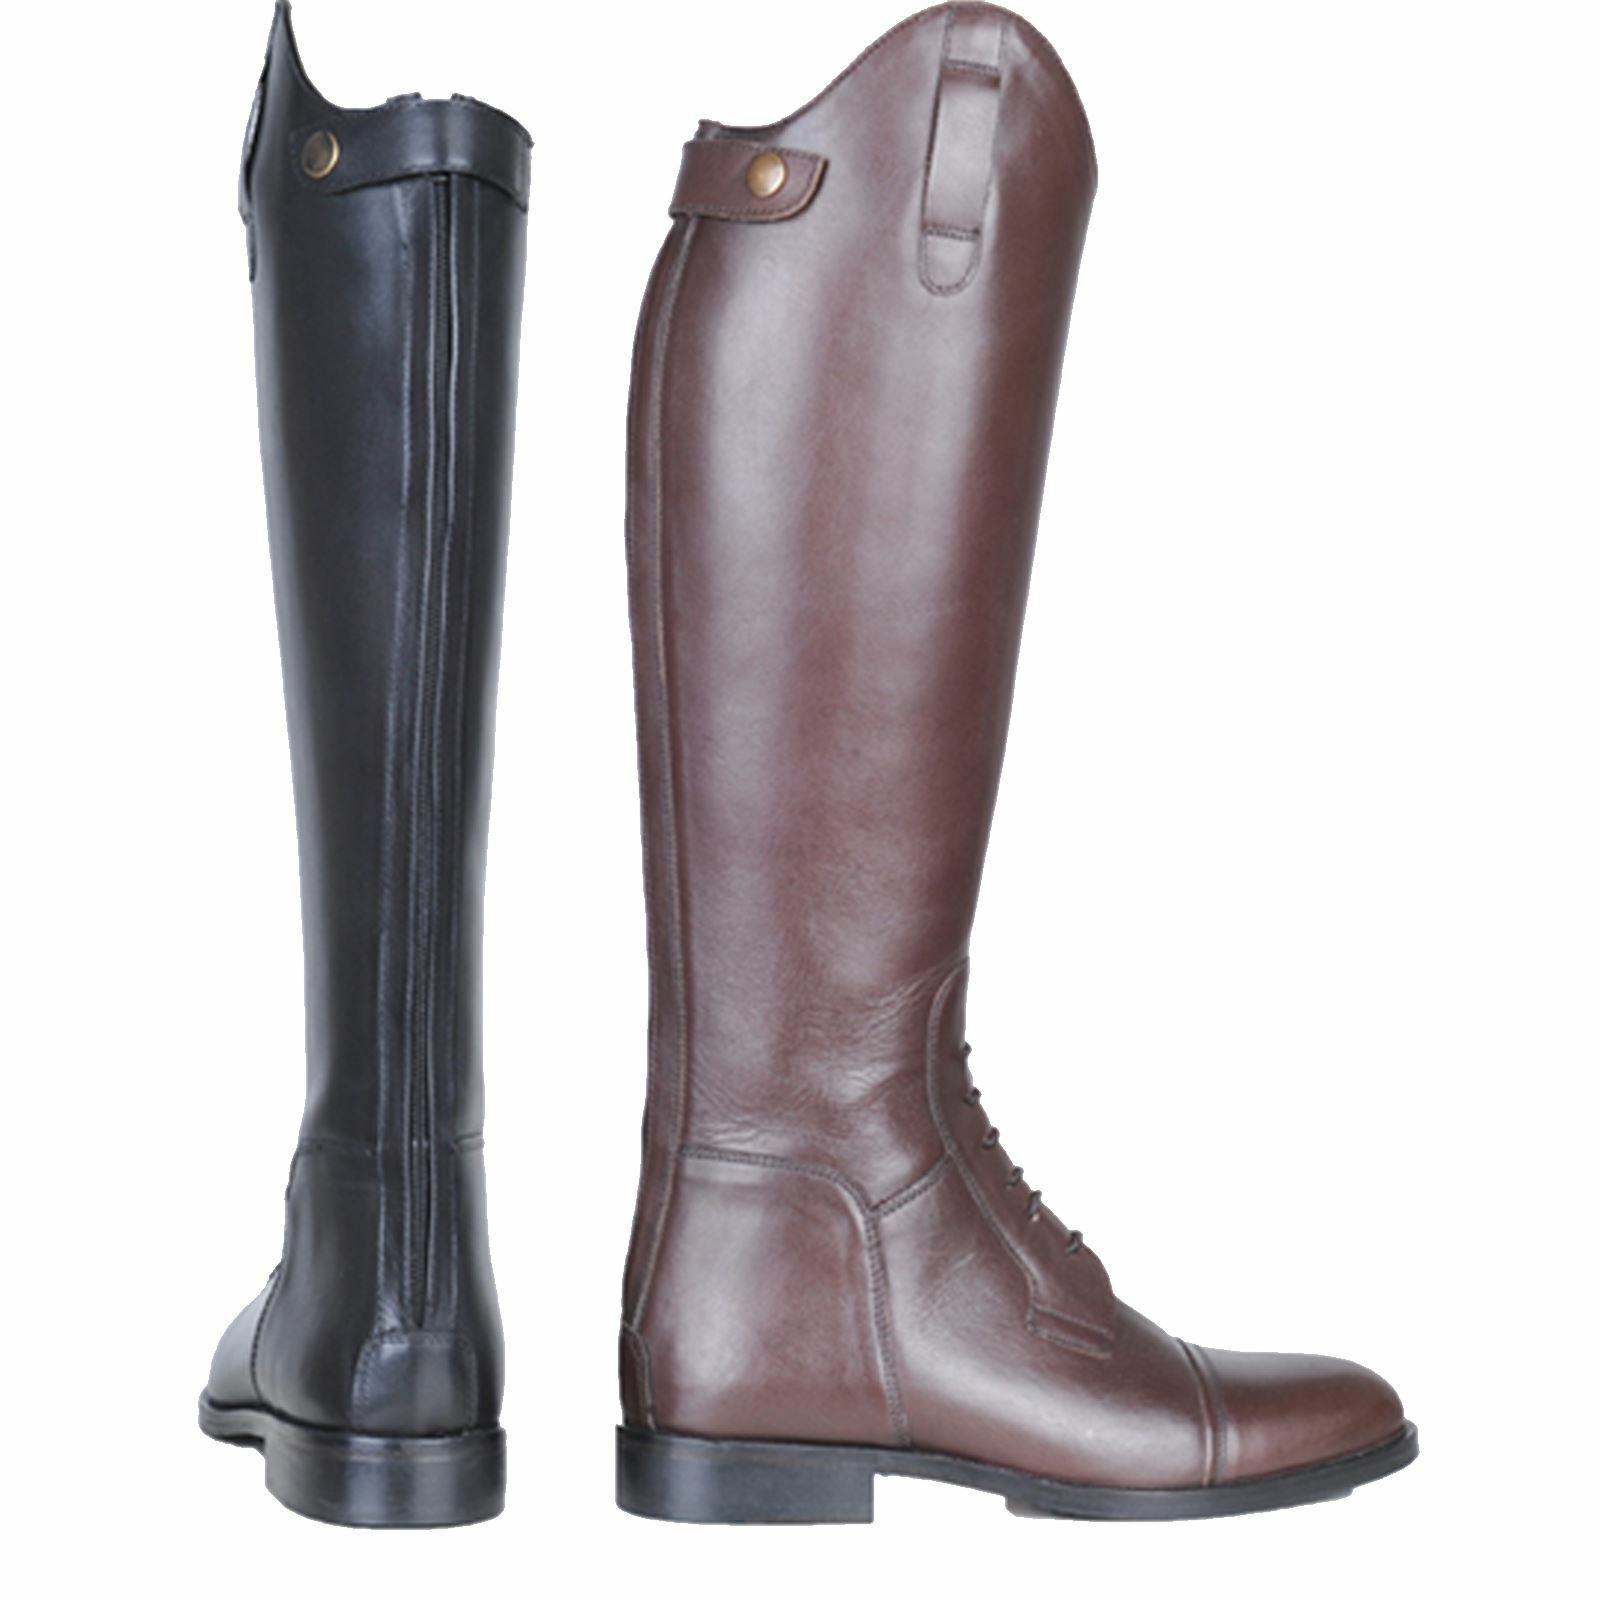 HKM Equestrian Adults Spain Soft Leather Slim Standard Long Horse Riding Boots